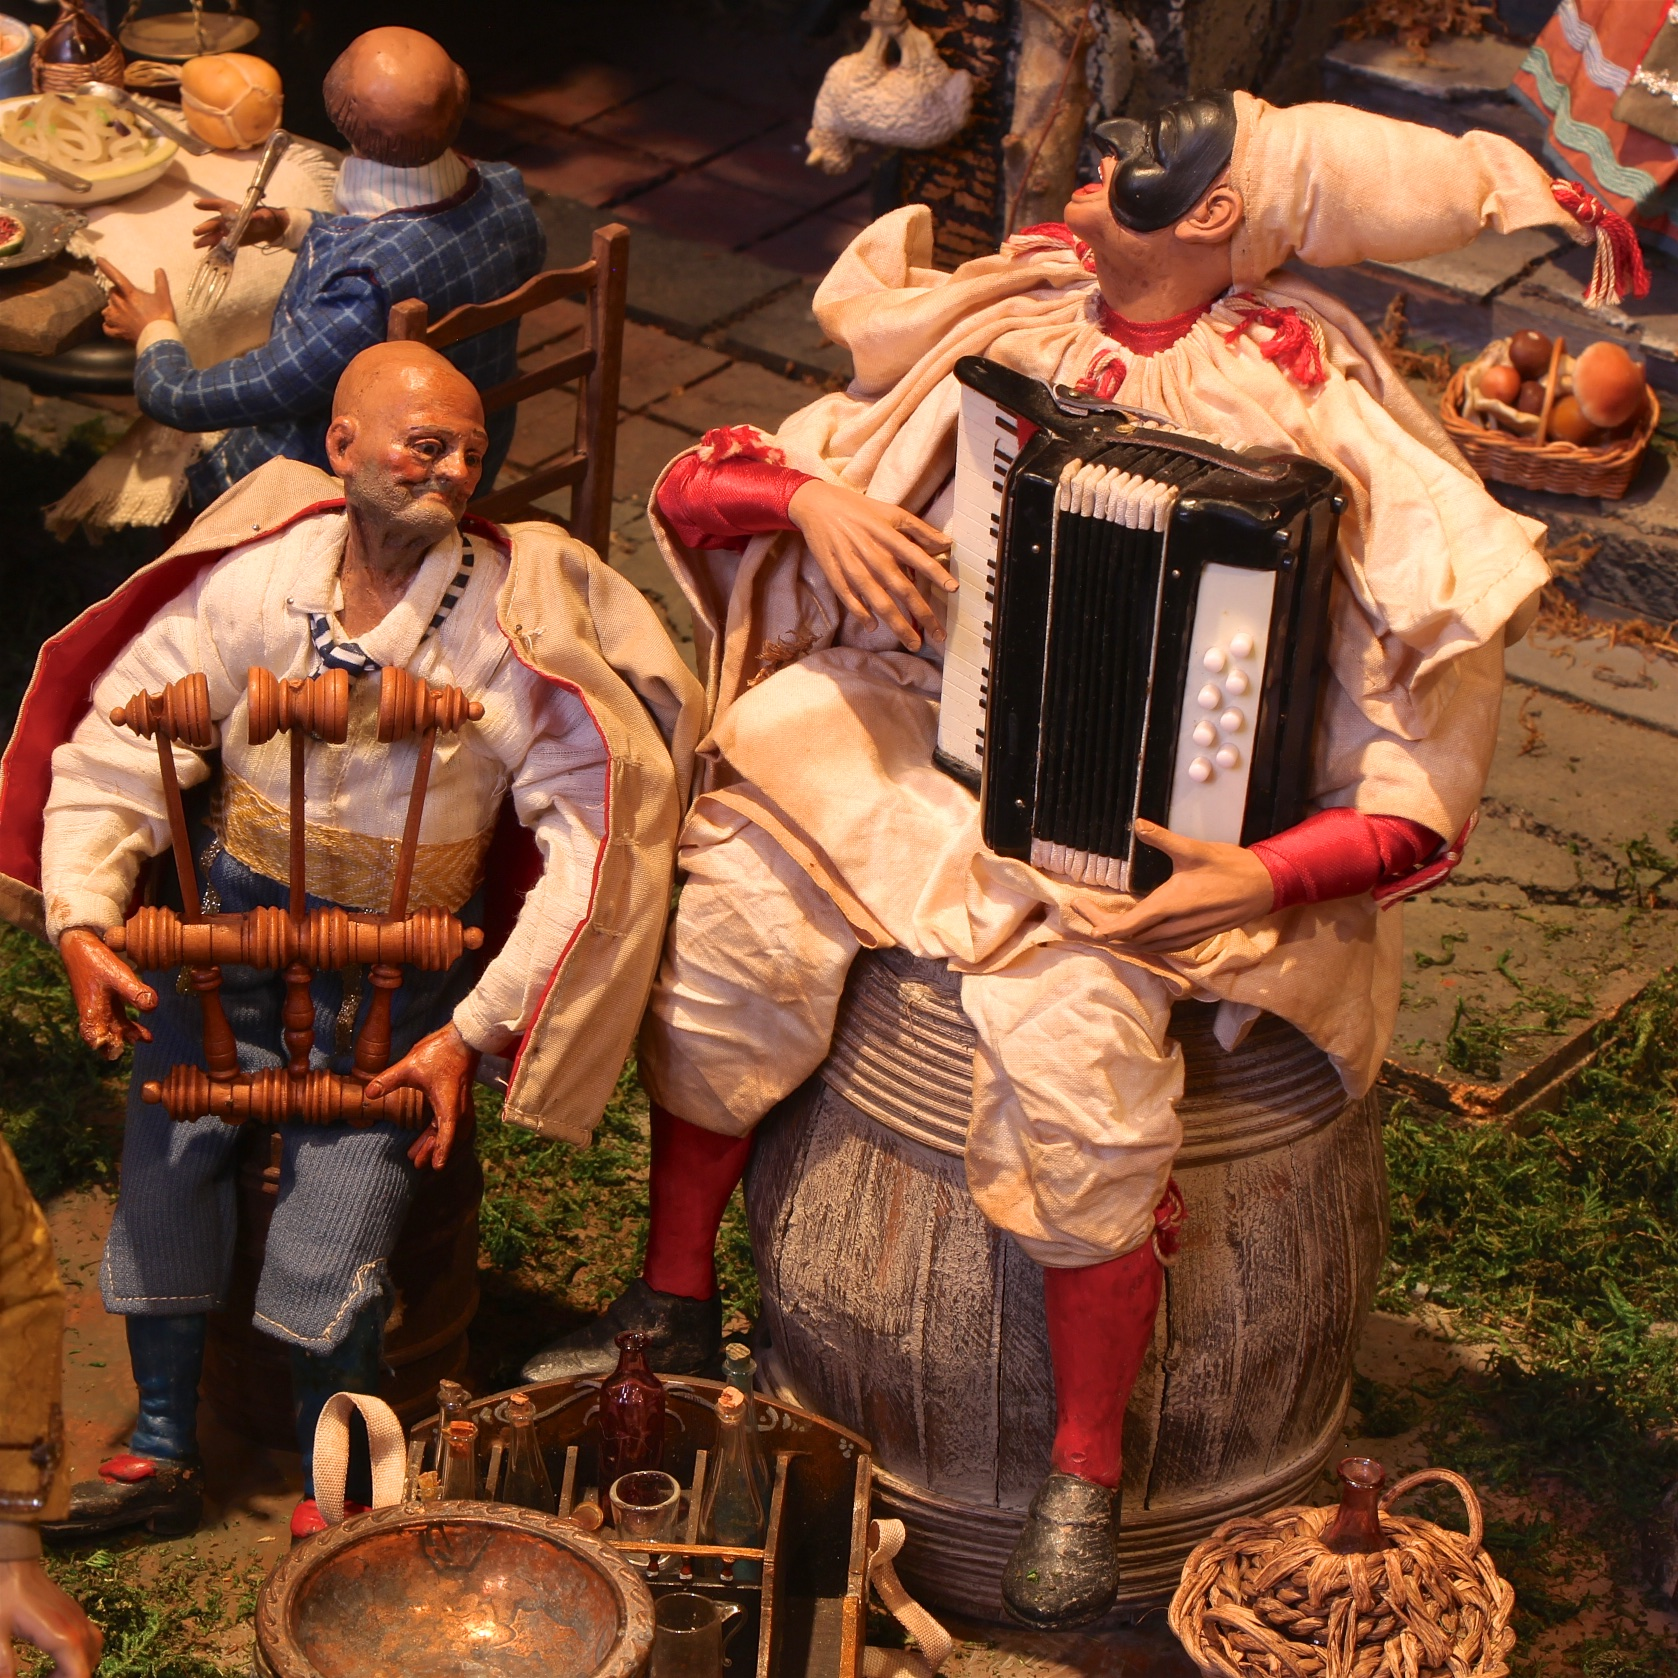 Figure 9: Two musicians at the tavern play Italian folk instruments. The triccheballacche (left) is a Neapolitan percussion instrument. Pulecenella, a stock character in Neapolitan puppetry who wears a mask, plays the organetto (right).